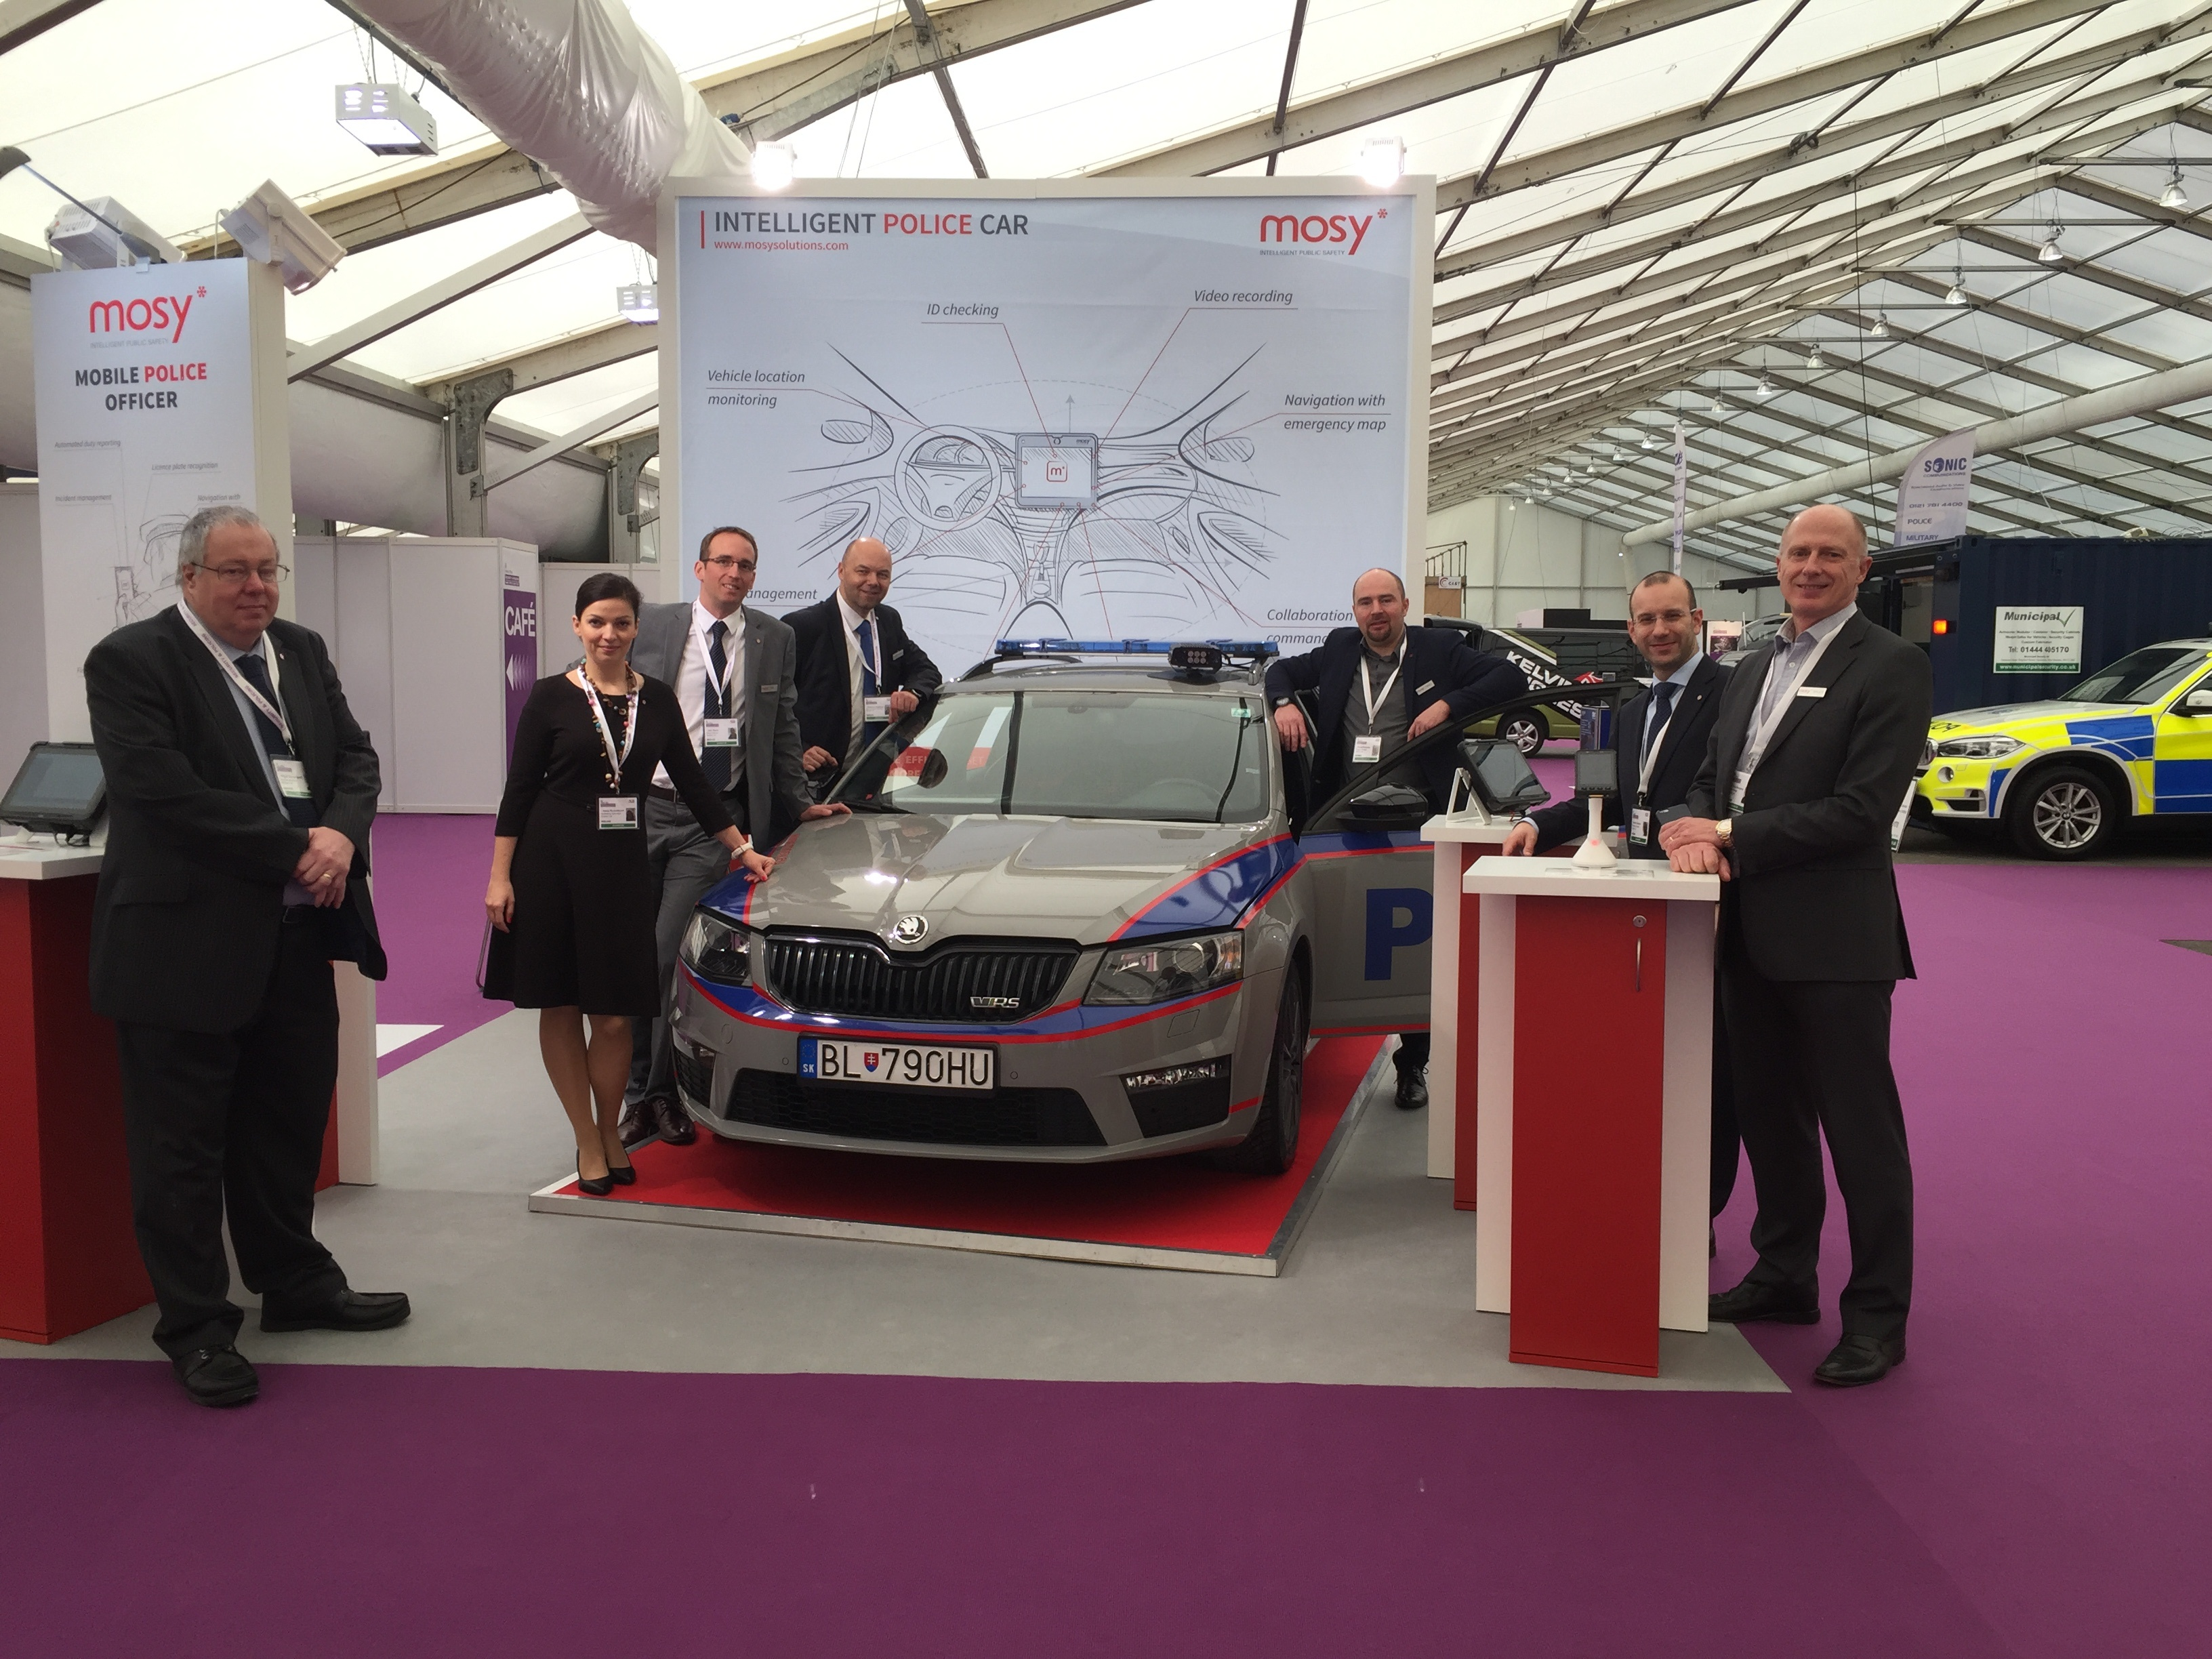 Mosy, member of Soitron Group, attended the Security and policing home office exhibition in Farnborough